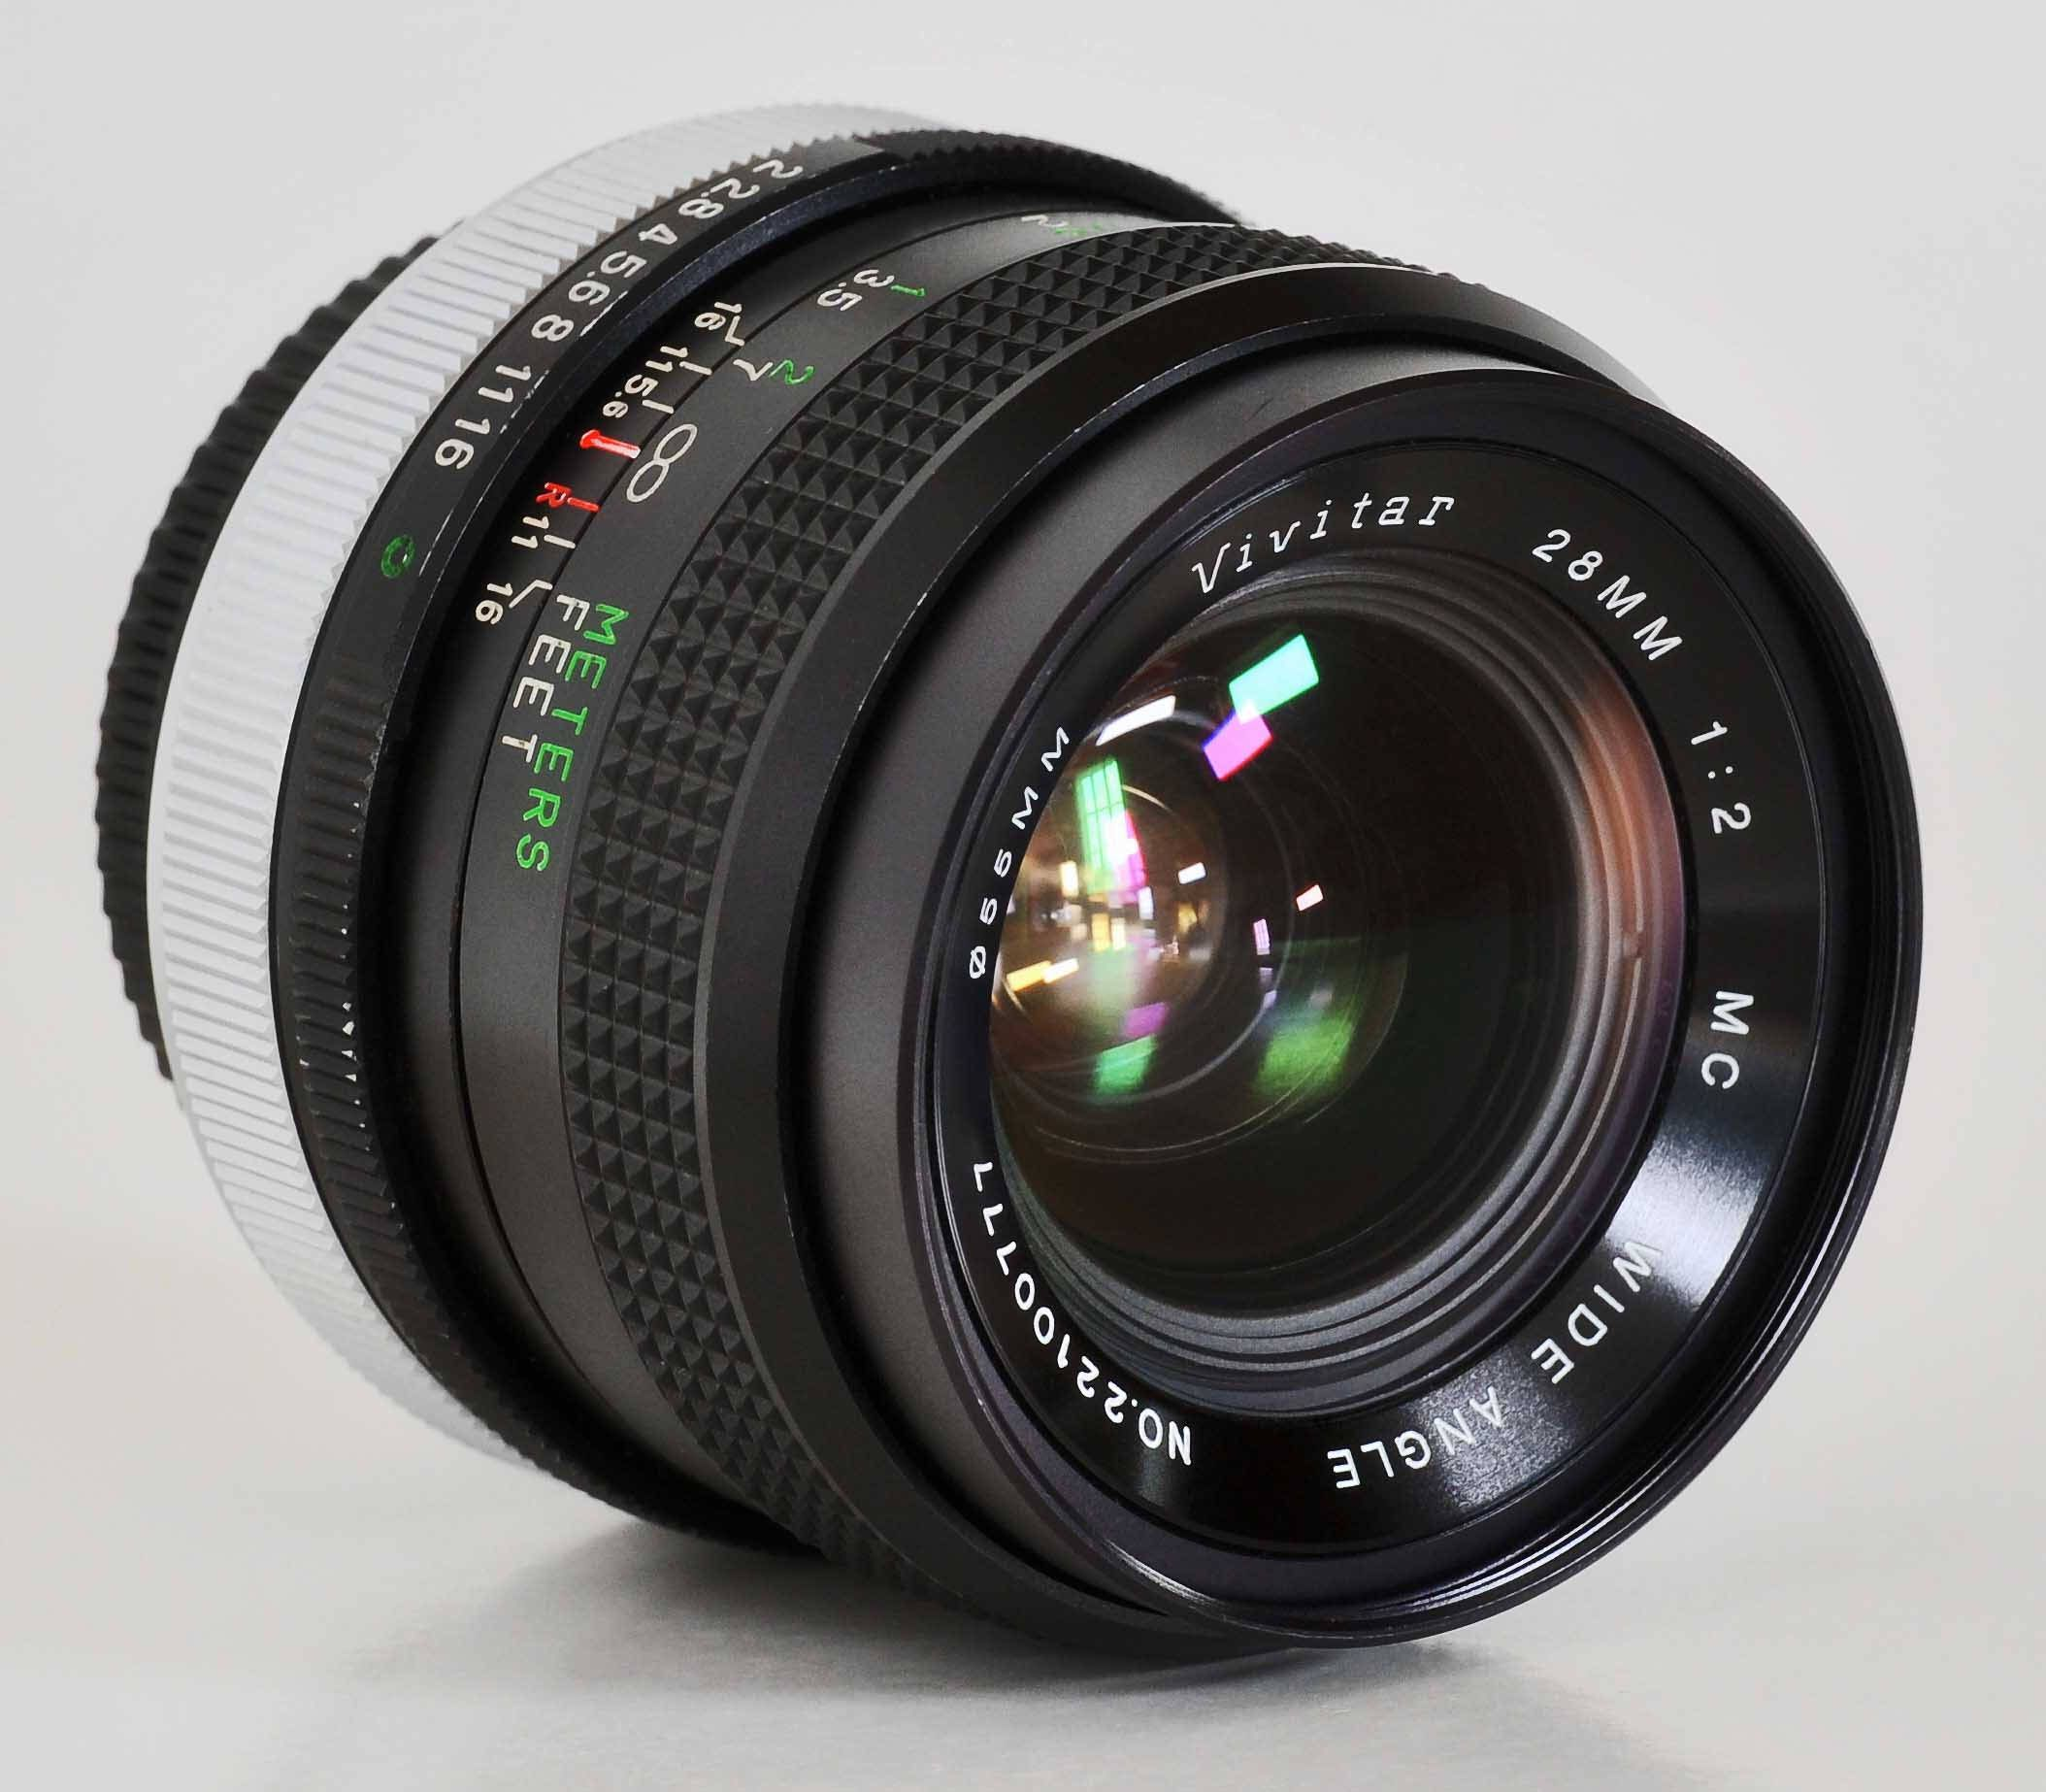 Canon Fd 28mm F 2 Wide Angle Prime Lens Ae 1 A 1 F 1 T90 T70 Sony Nex Minty Except For Prime Lens Wide Angle Photography Gear